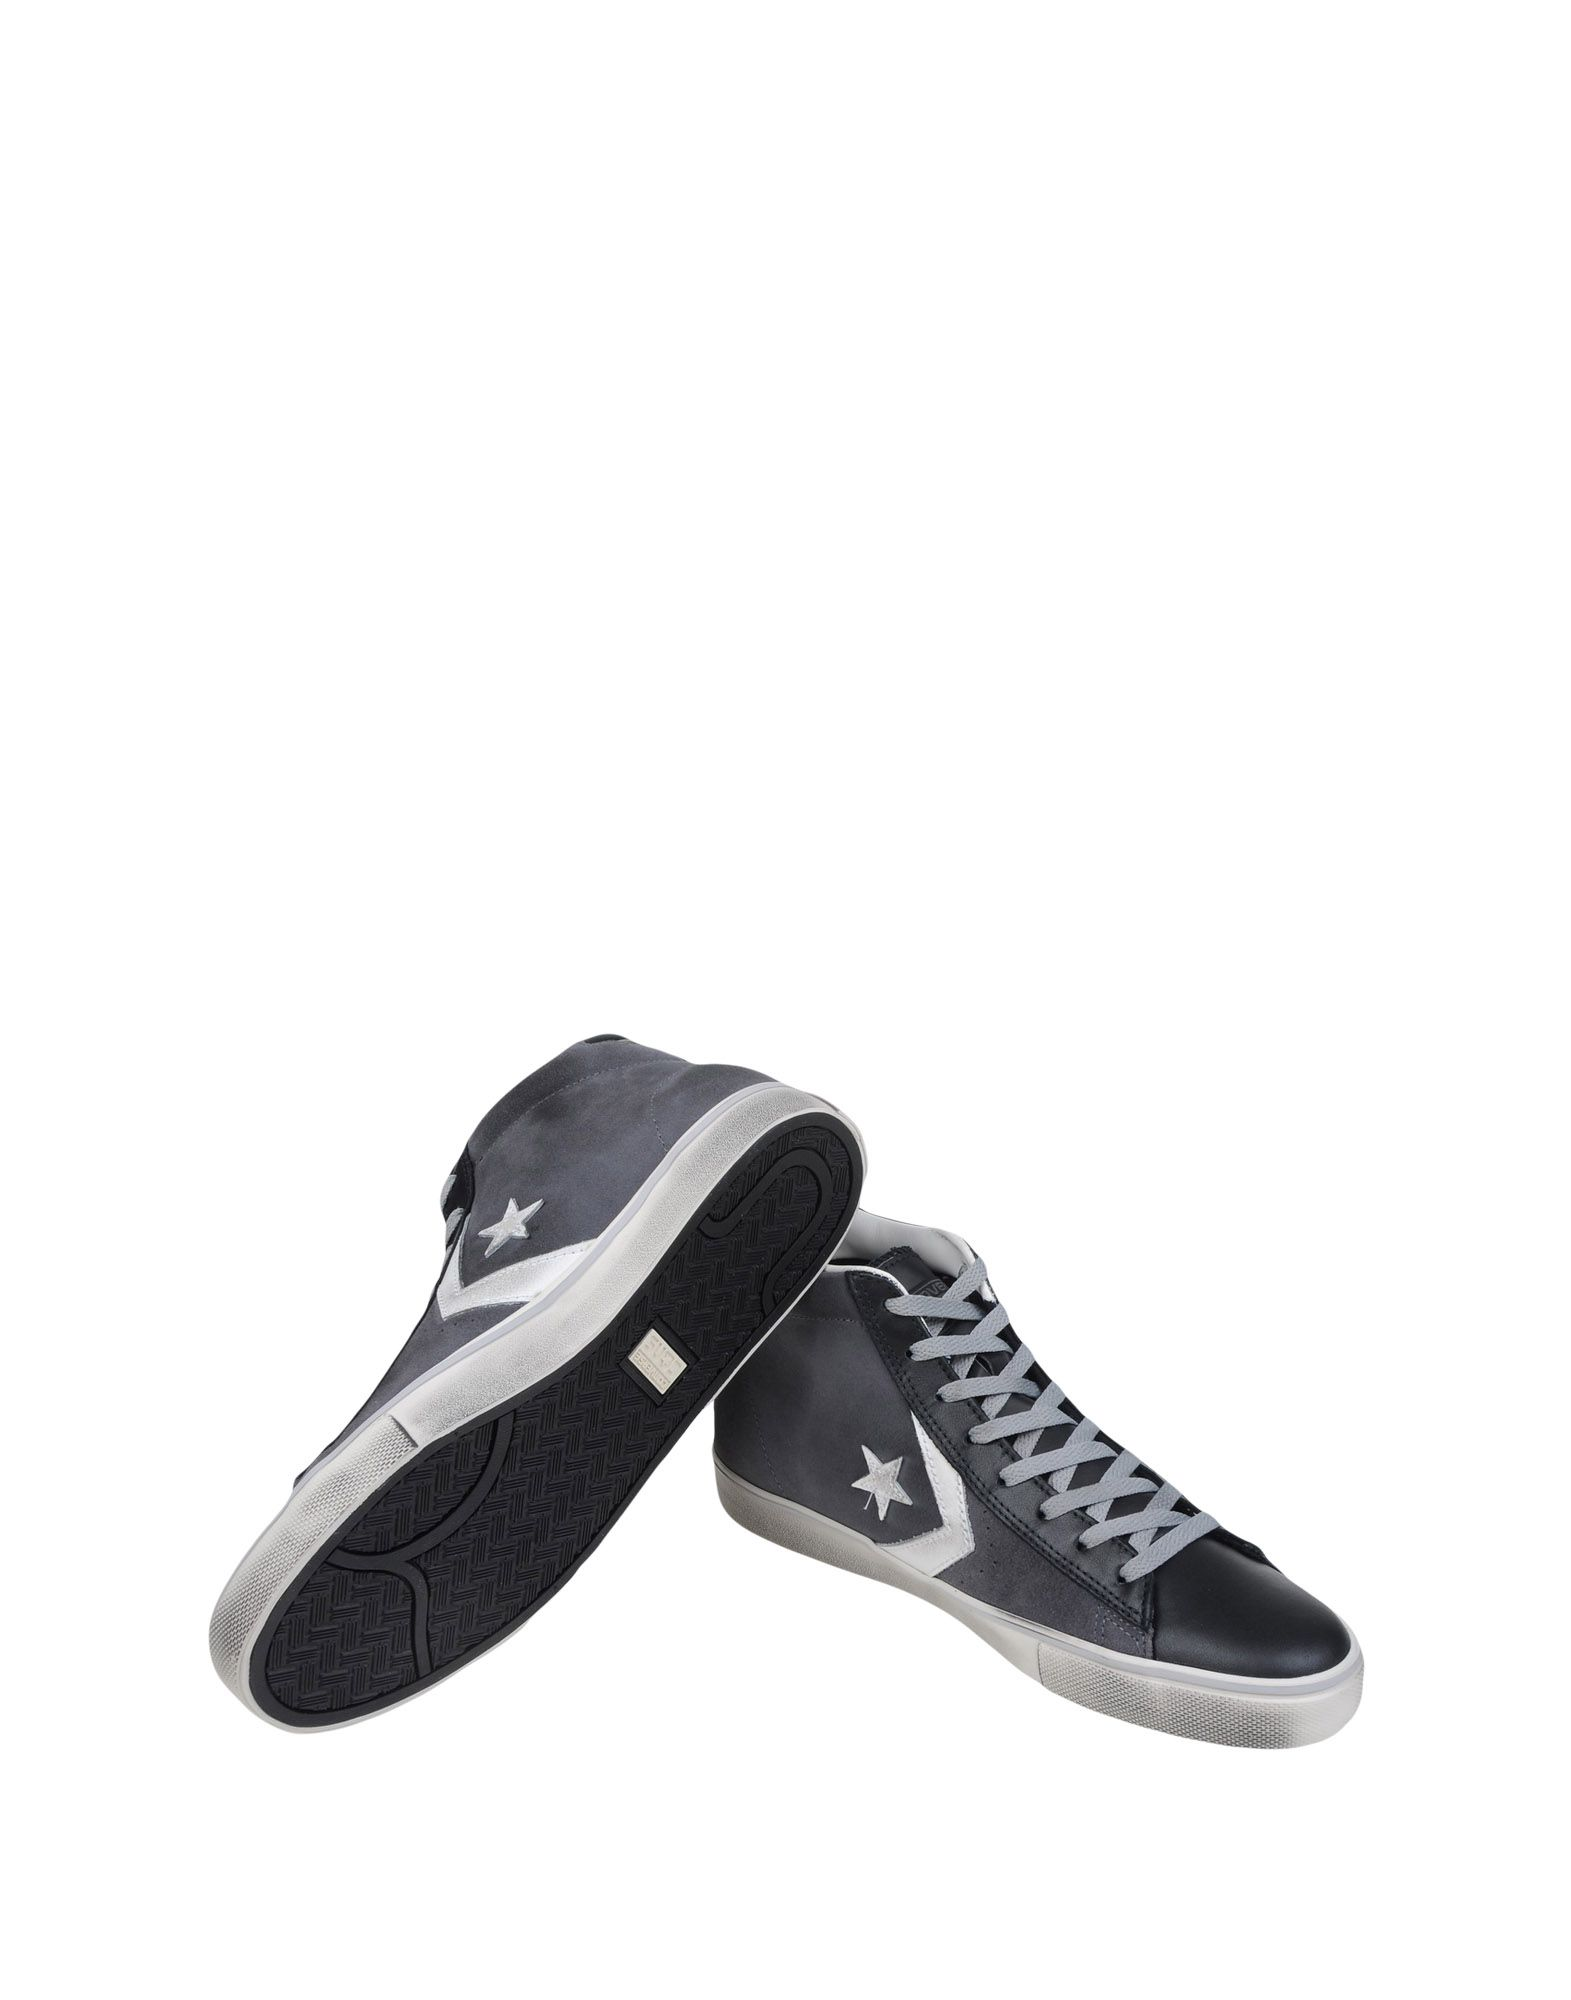 Sneakers Converse Cons Pro Leather Vulc Mid Suede/Lea - Homme - Sneakers Converse Cons sur